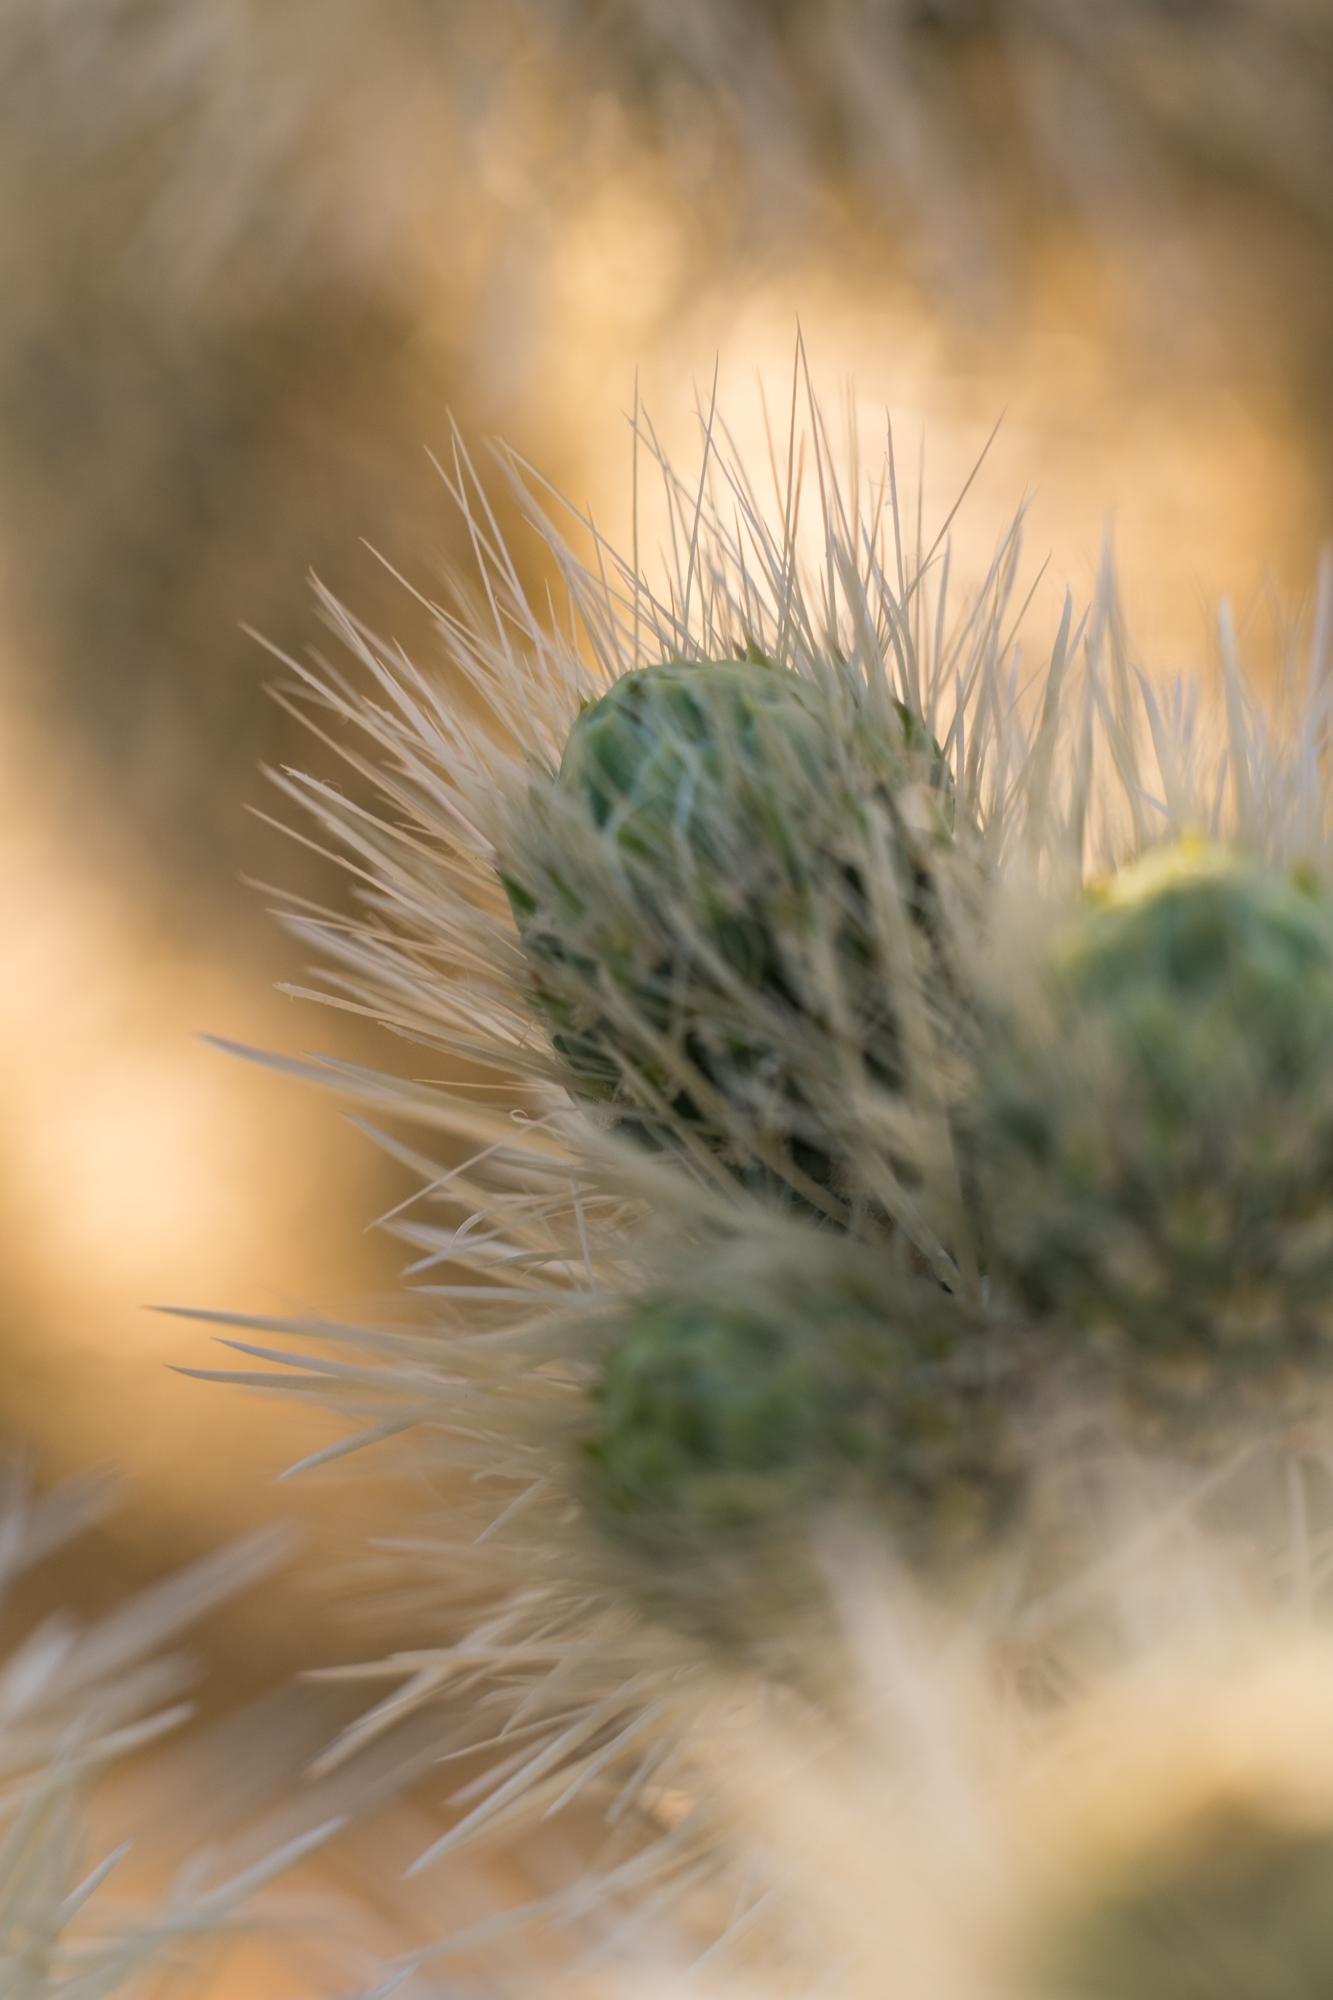 The cactus are fun to shoot with a close-up macro lens.